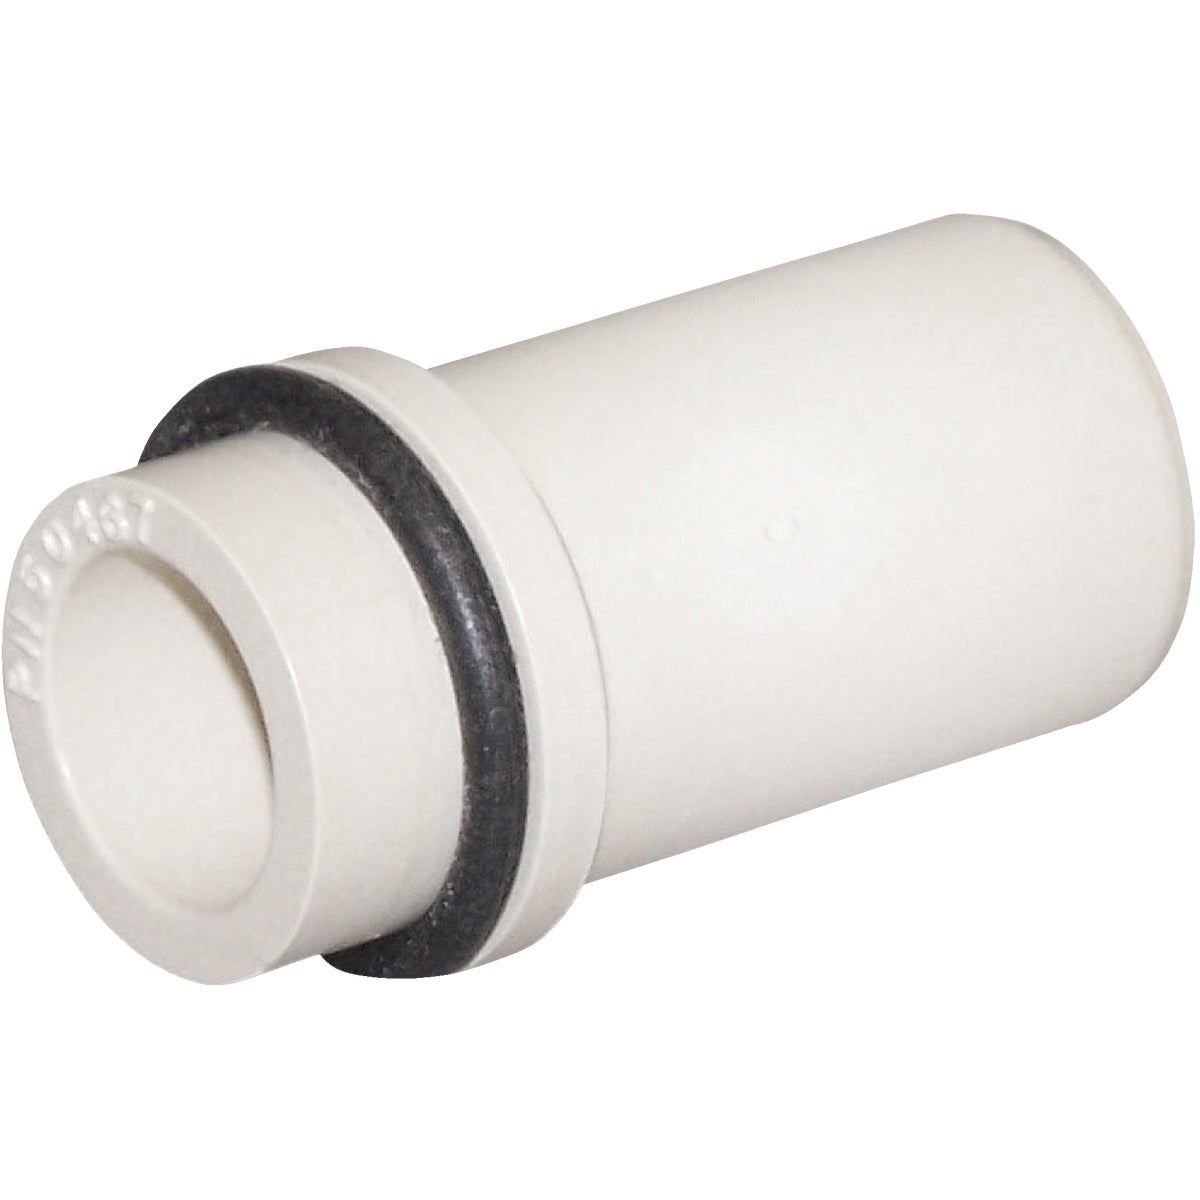 "3/4"" CPVC TRANS ADAPTER - 50467 by Genova Inc"